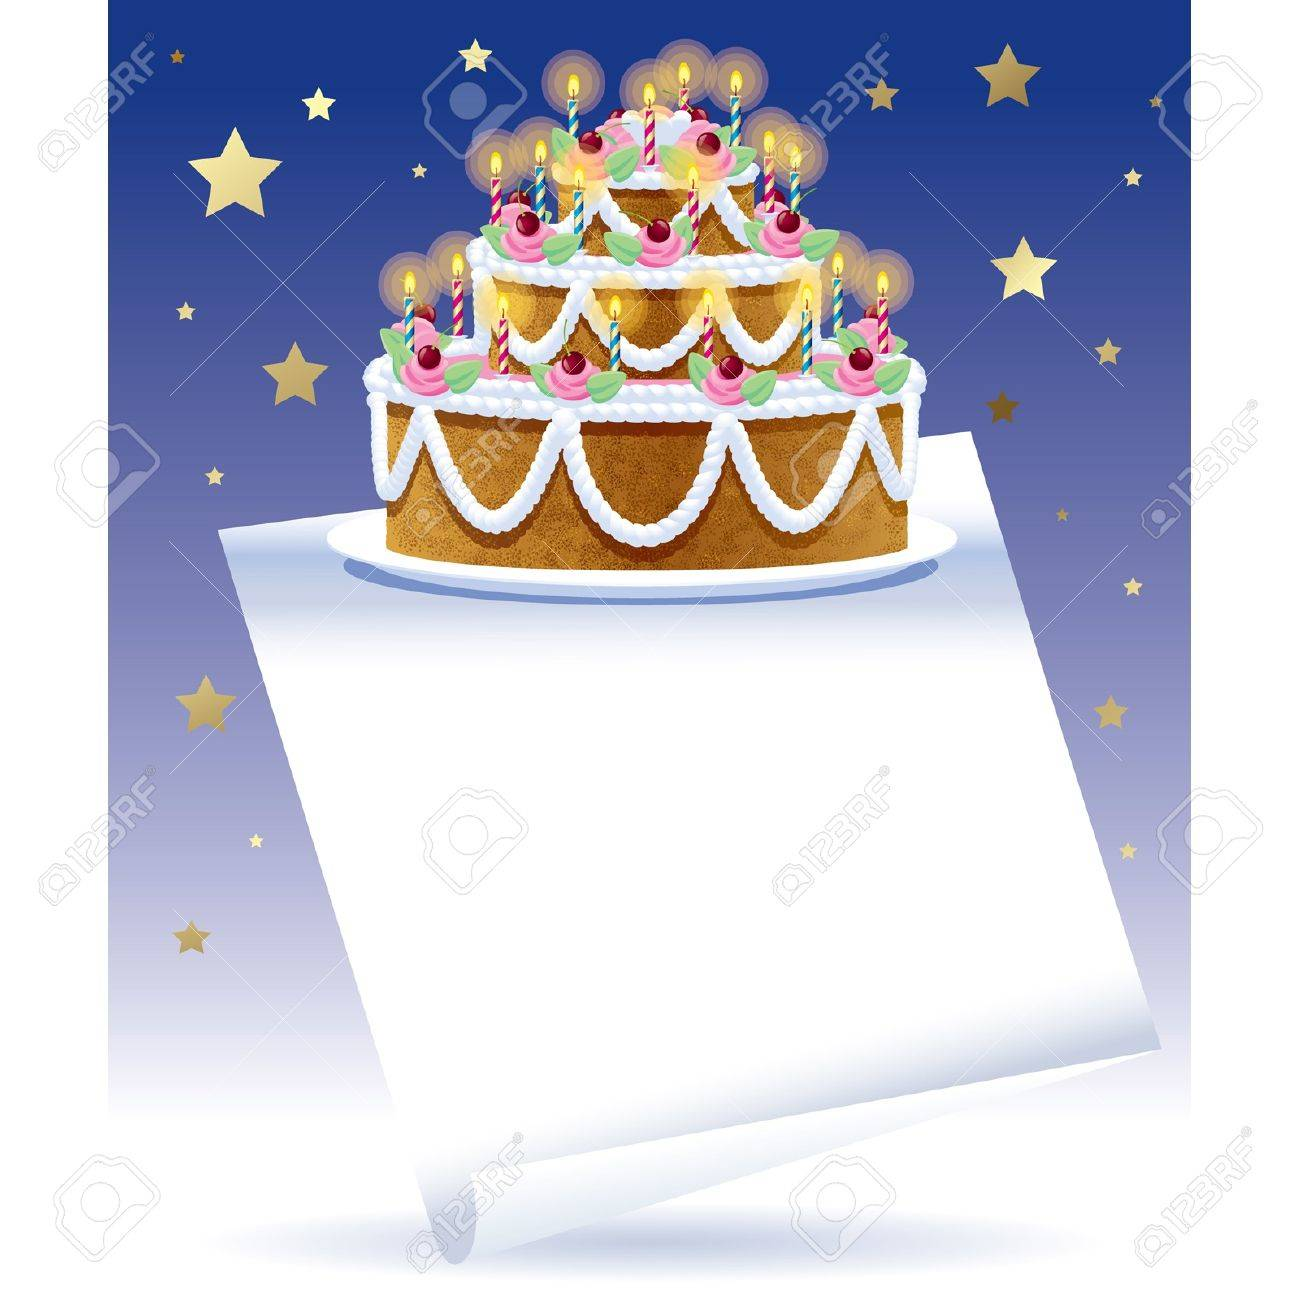 Vector Birthday Cake With White Banner And Gold Stars On The